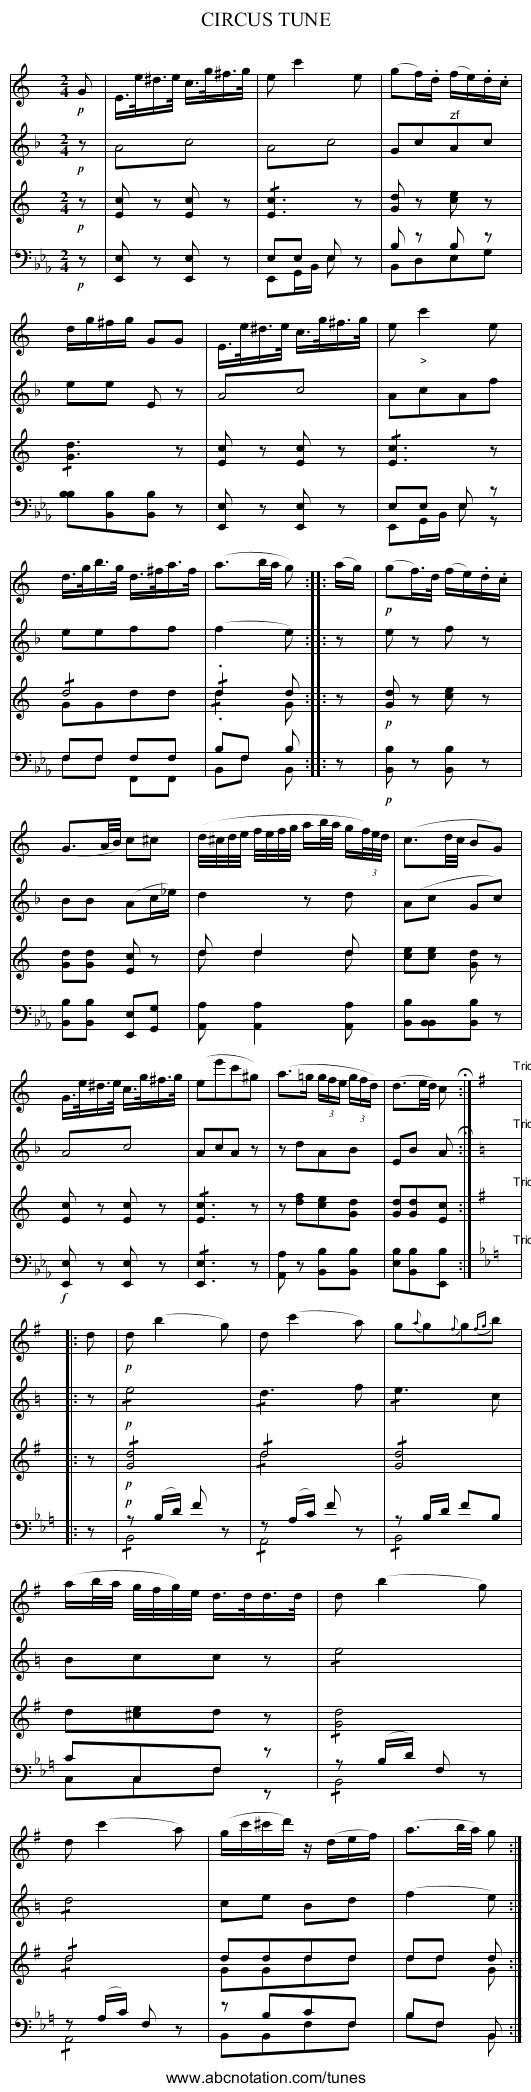 CIRCUS TUNE - staff notation